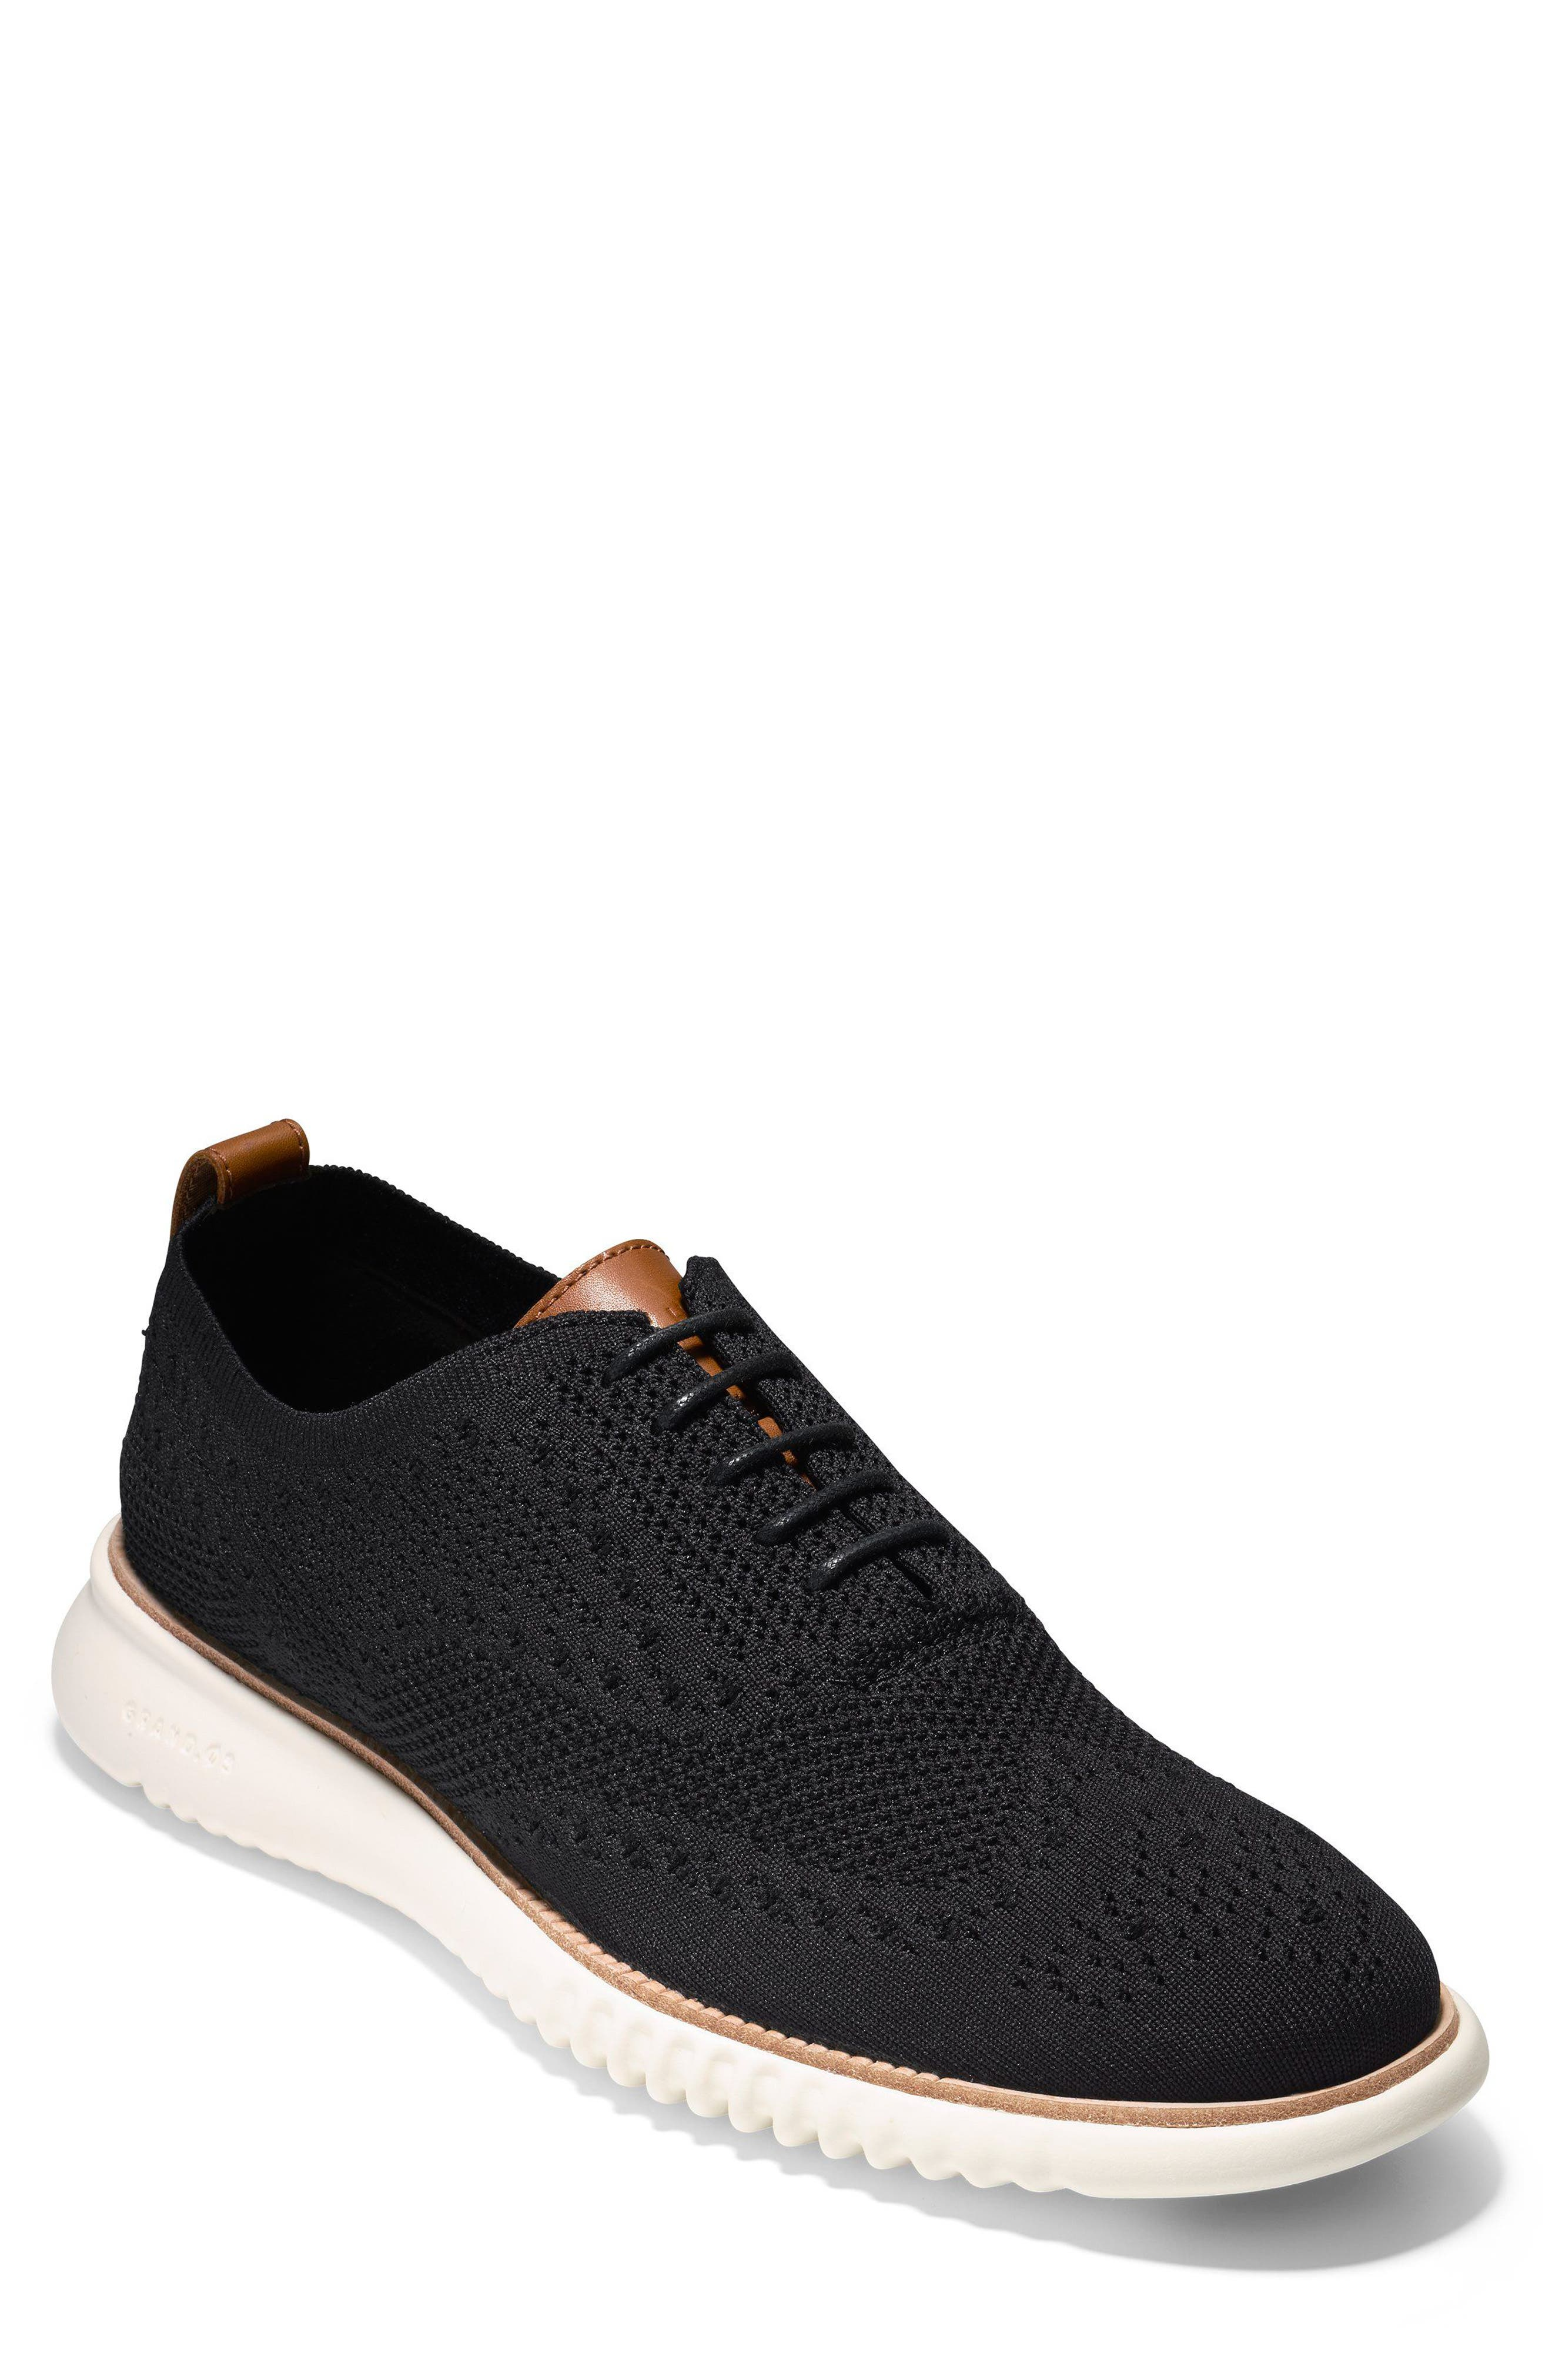 COLE HAAN, 2.ZeroGrand Stitchlite Water Resistant Wingtip, Main thumbnail 1, color, BLACK/ IVORY